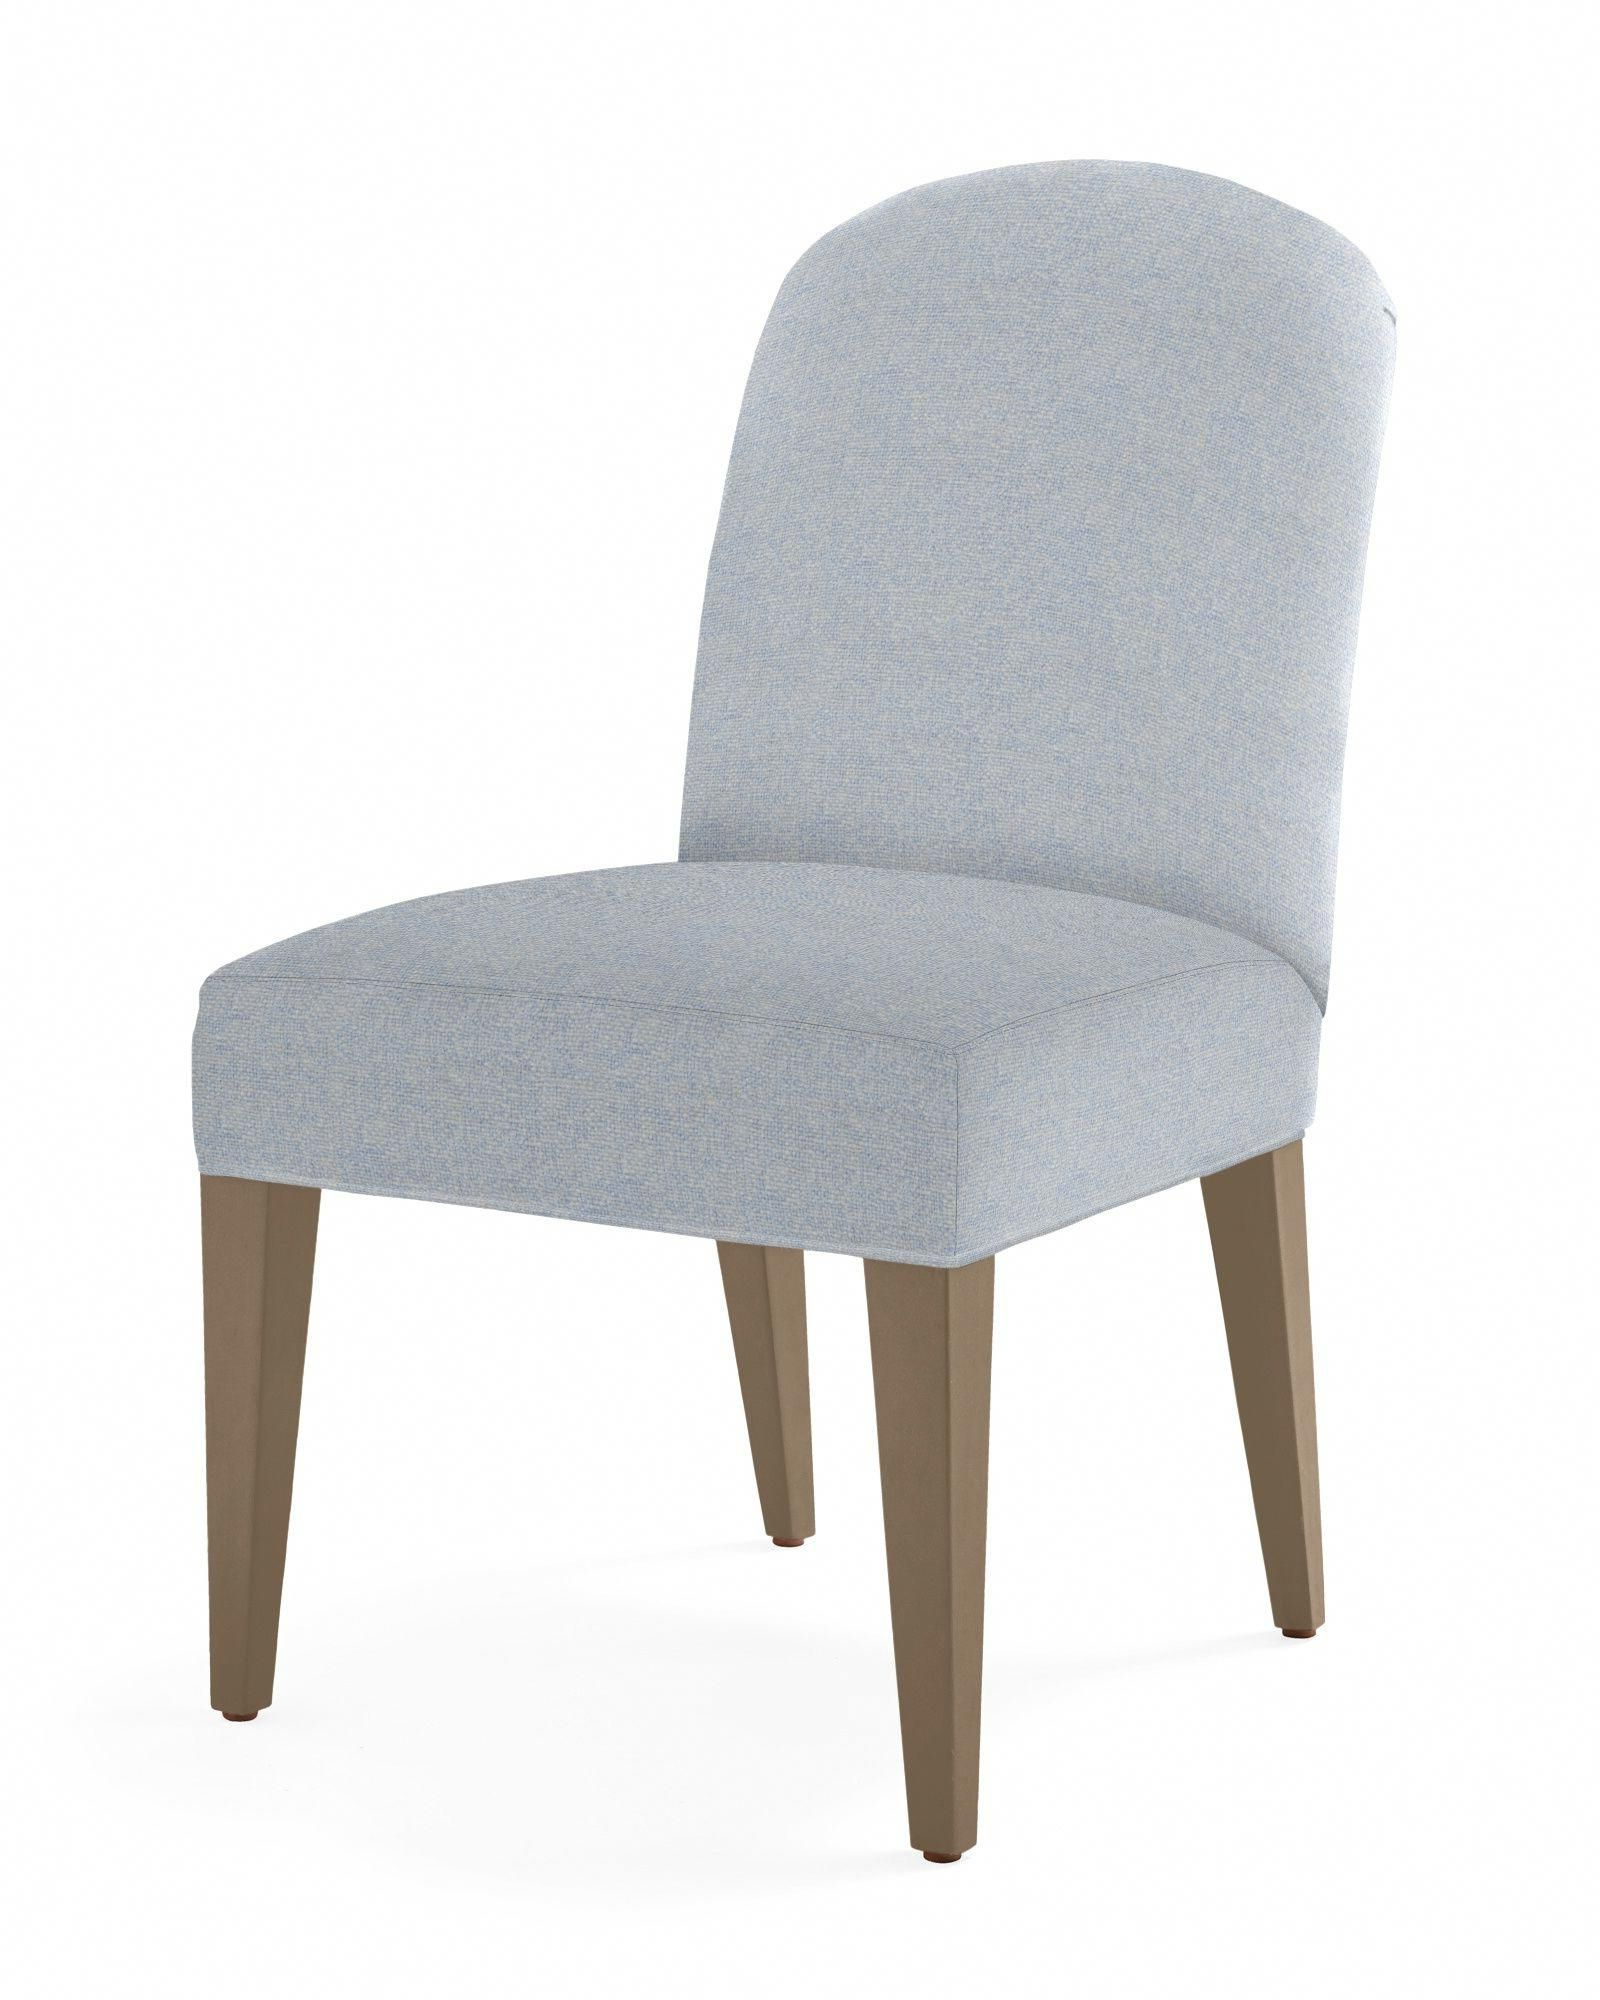 Styling Chairs Regarding Ames Arm Sofa Chairs (Gallery 7 of 20)